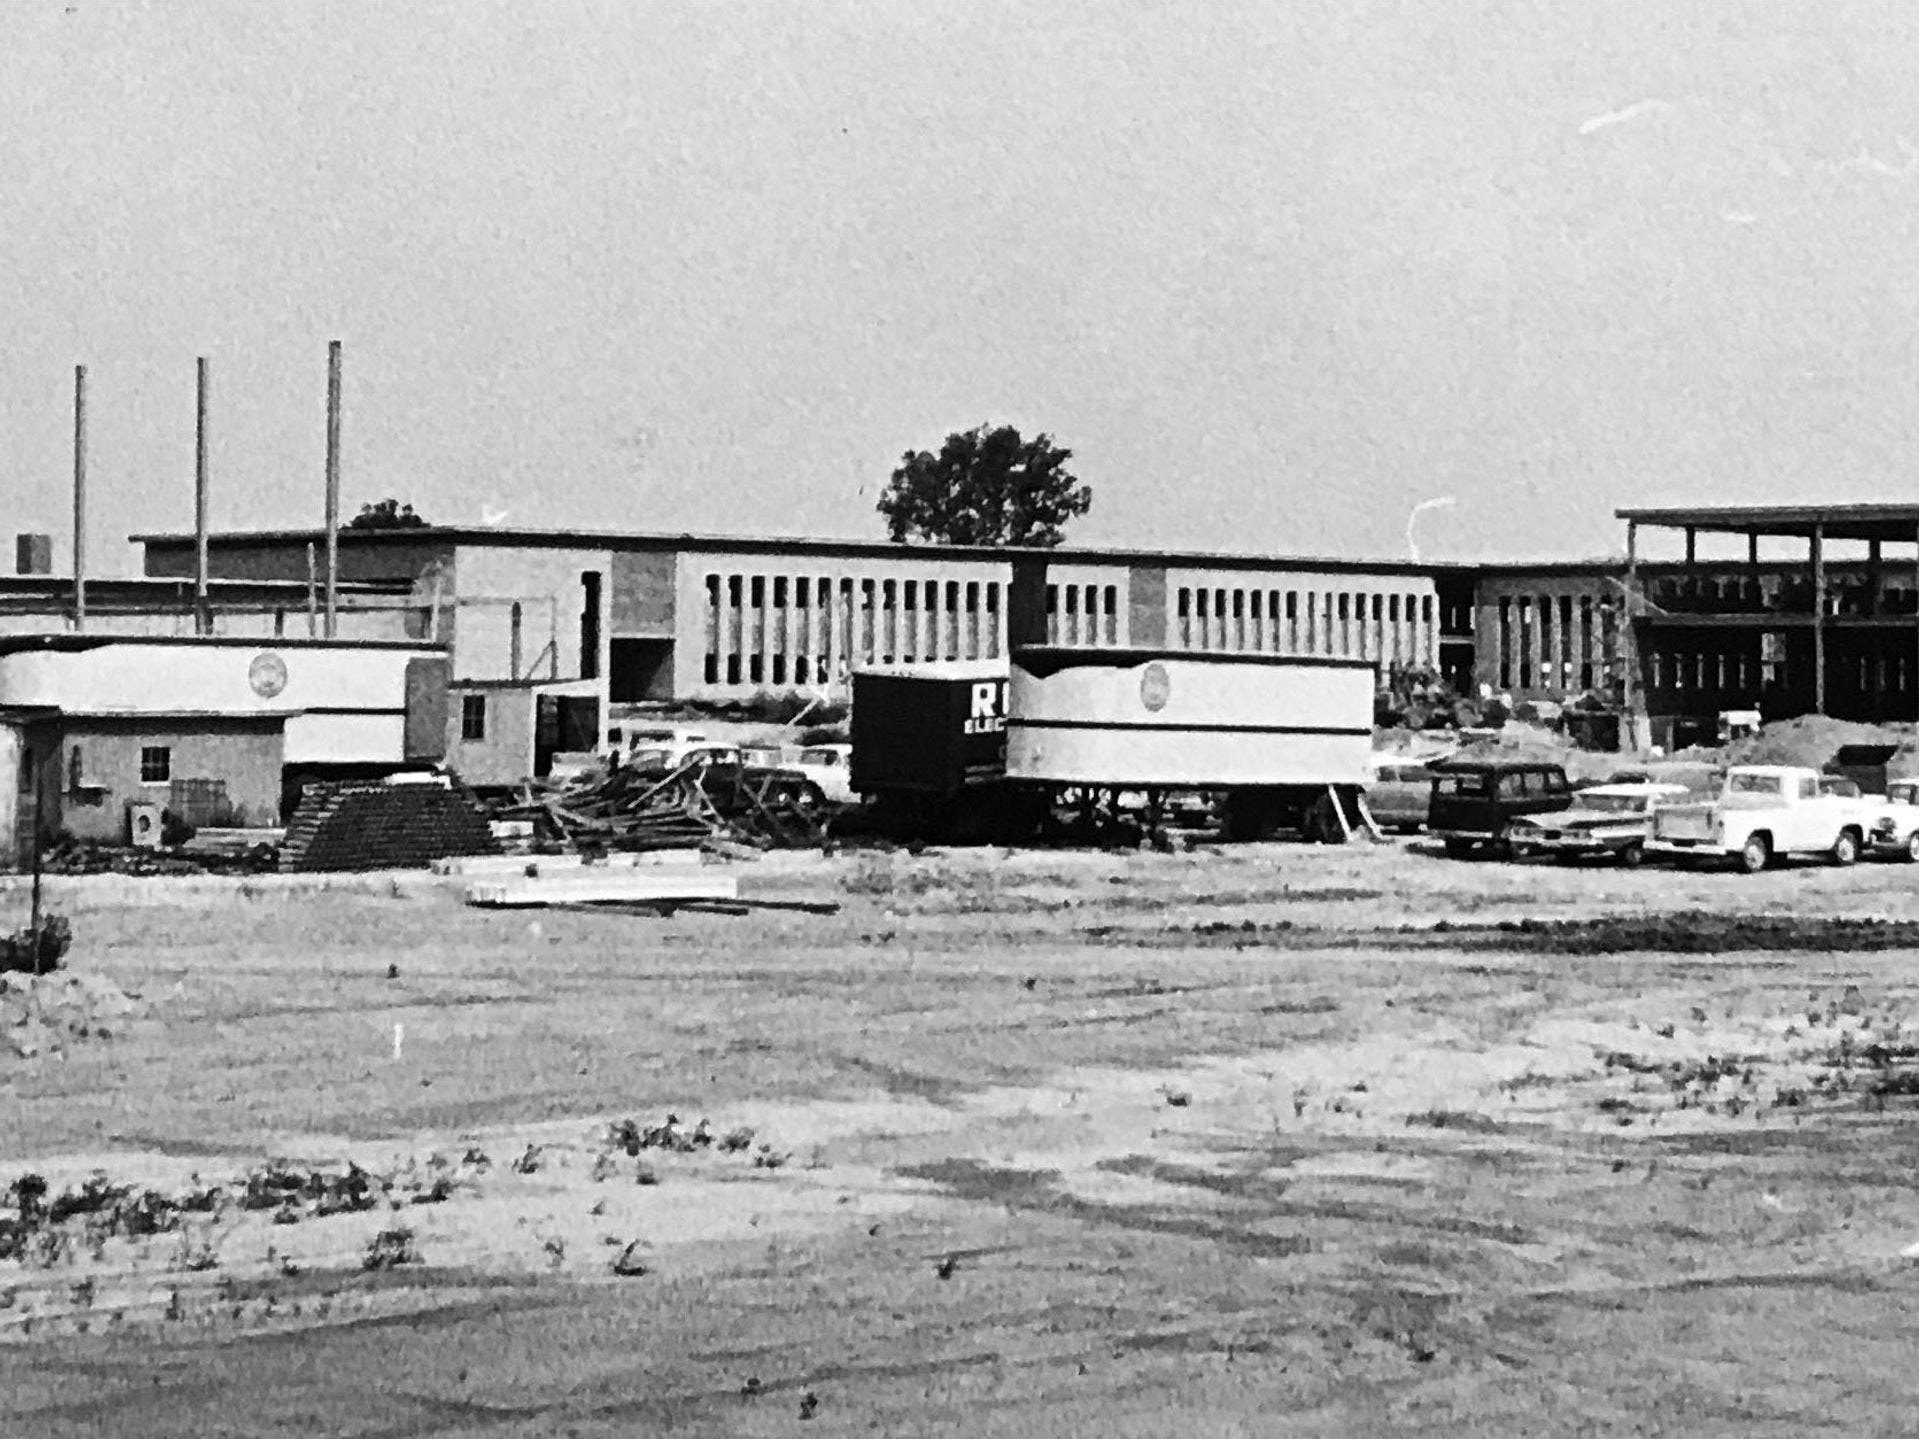 Northwest High School under construction at 34th and Moeller Rd. in 1962